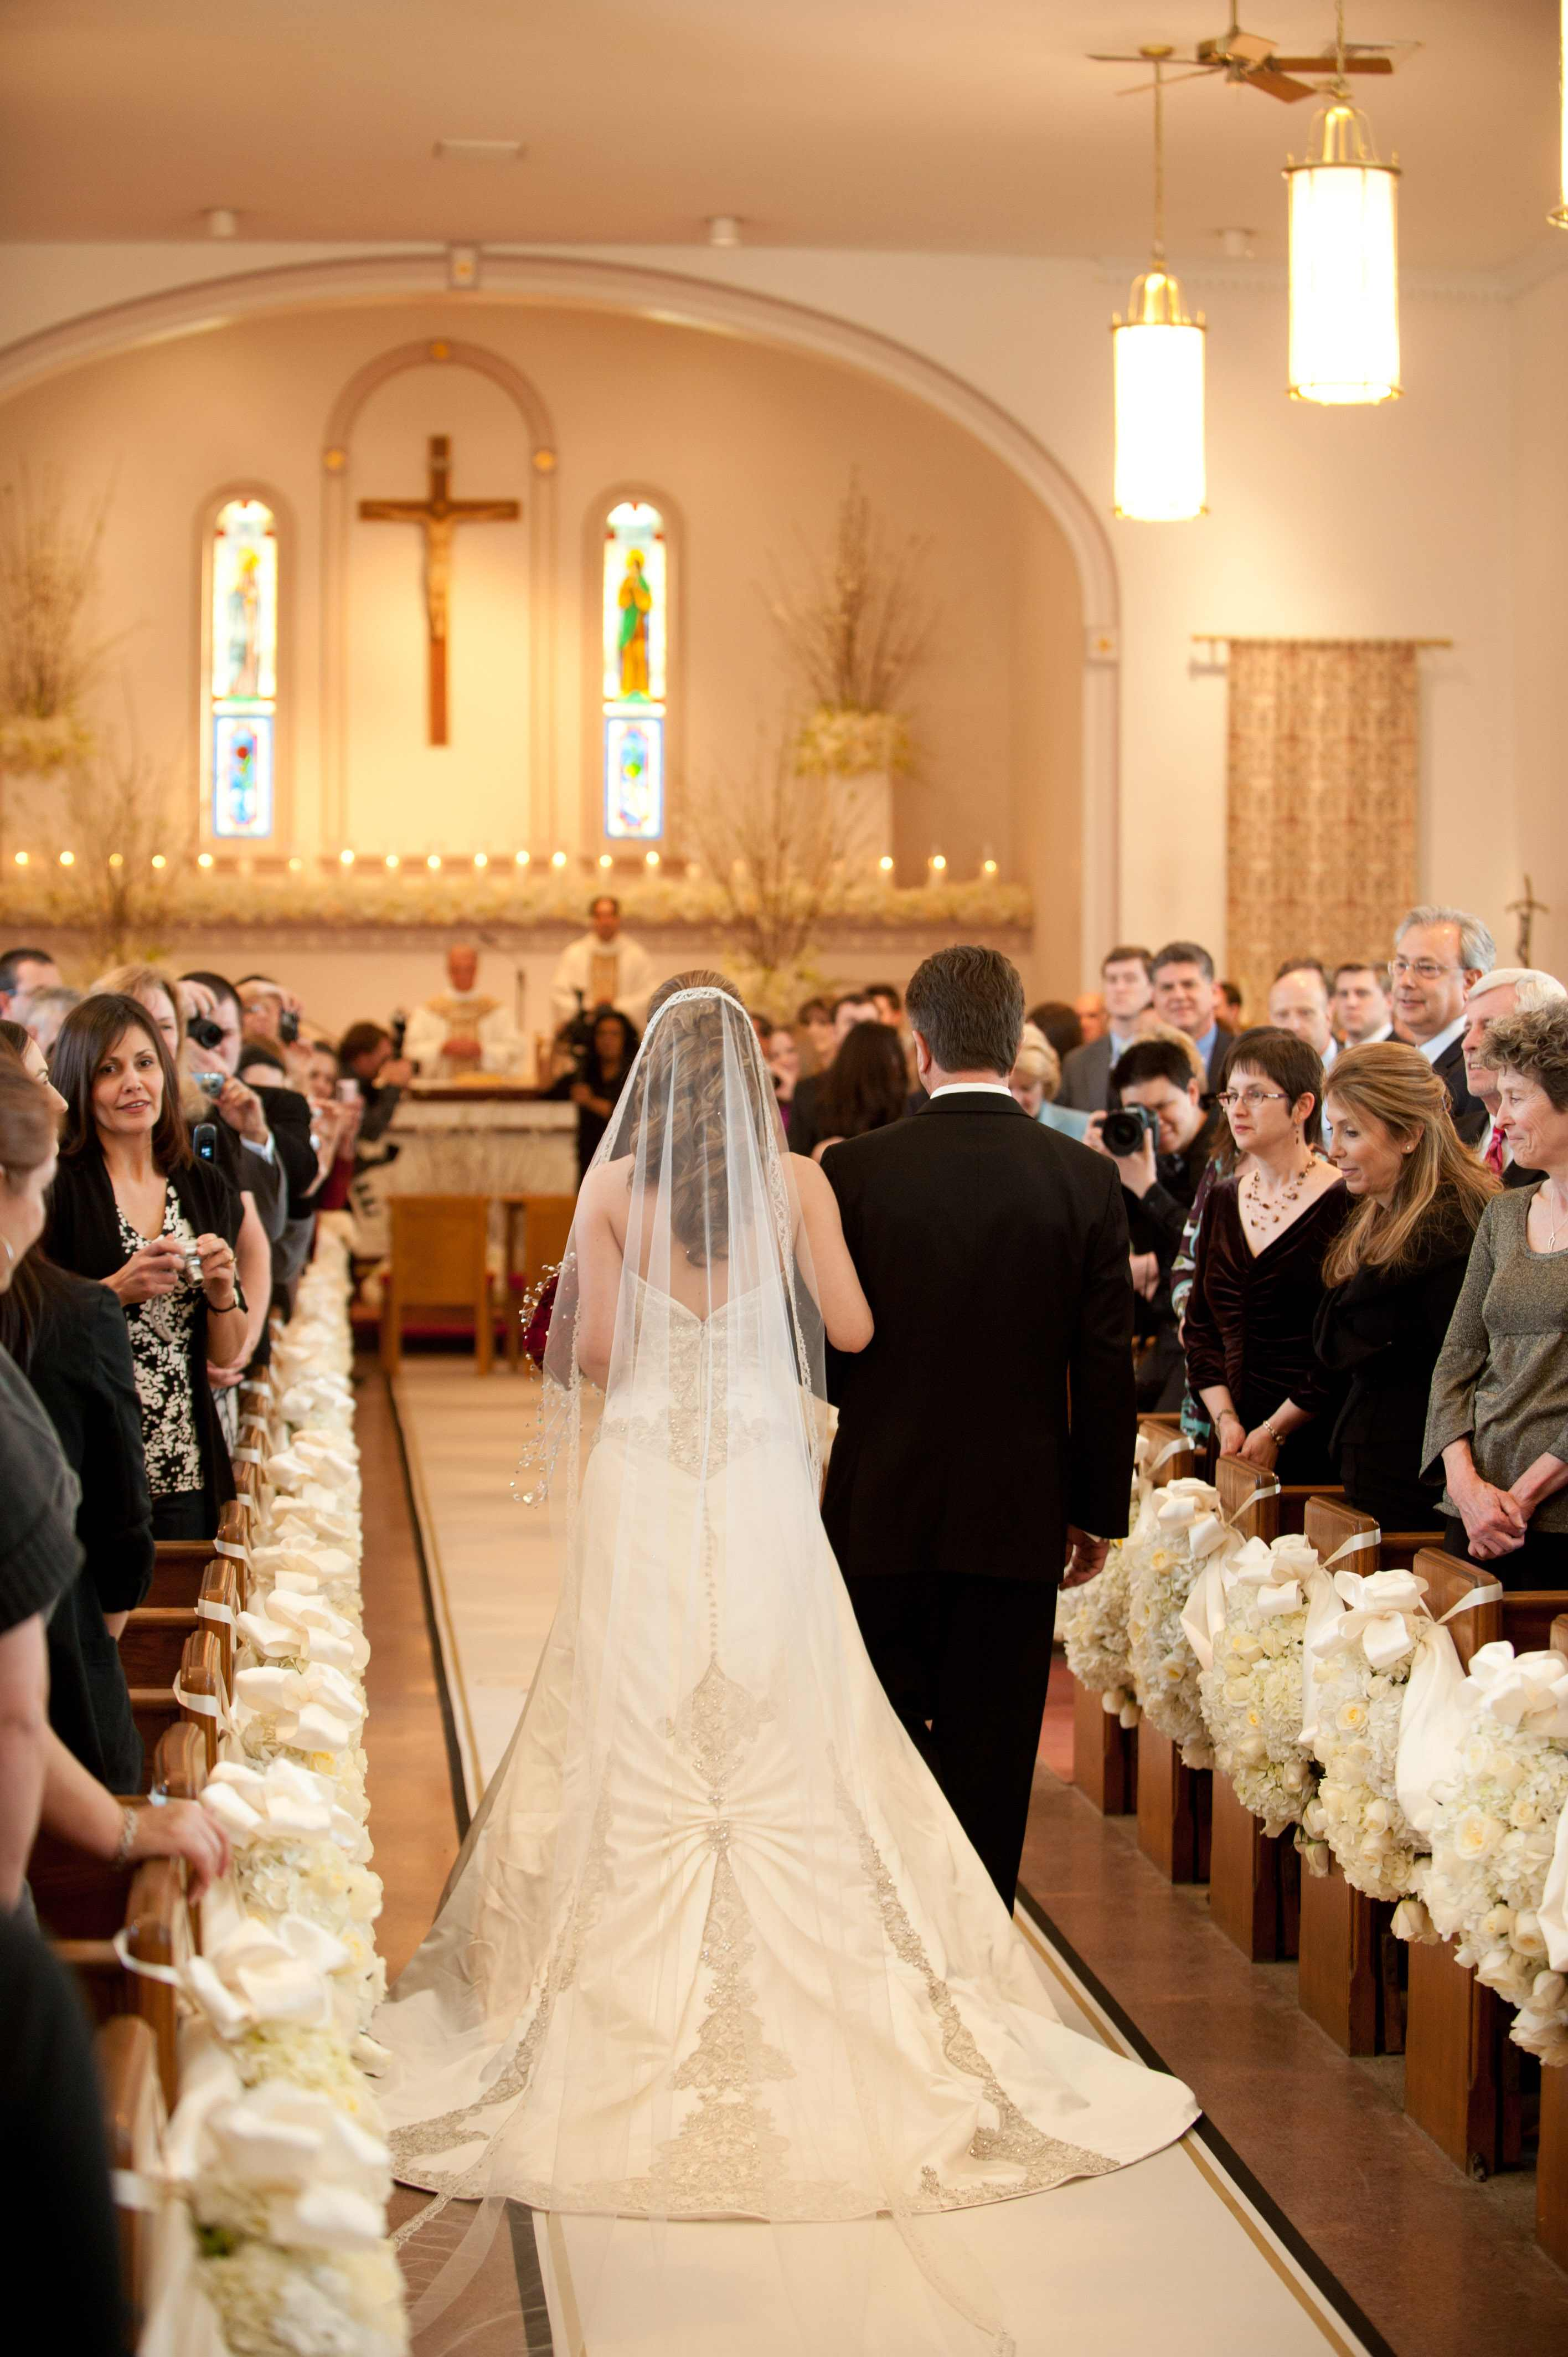 Bride walking down aisle with father of the bride & Wedding Ceremony Ideas: 13 Décor Ideas for a Church Wedding - Inside ...